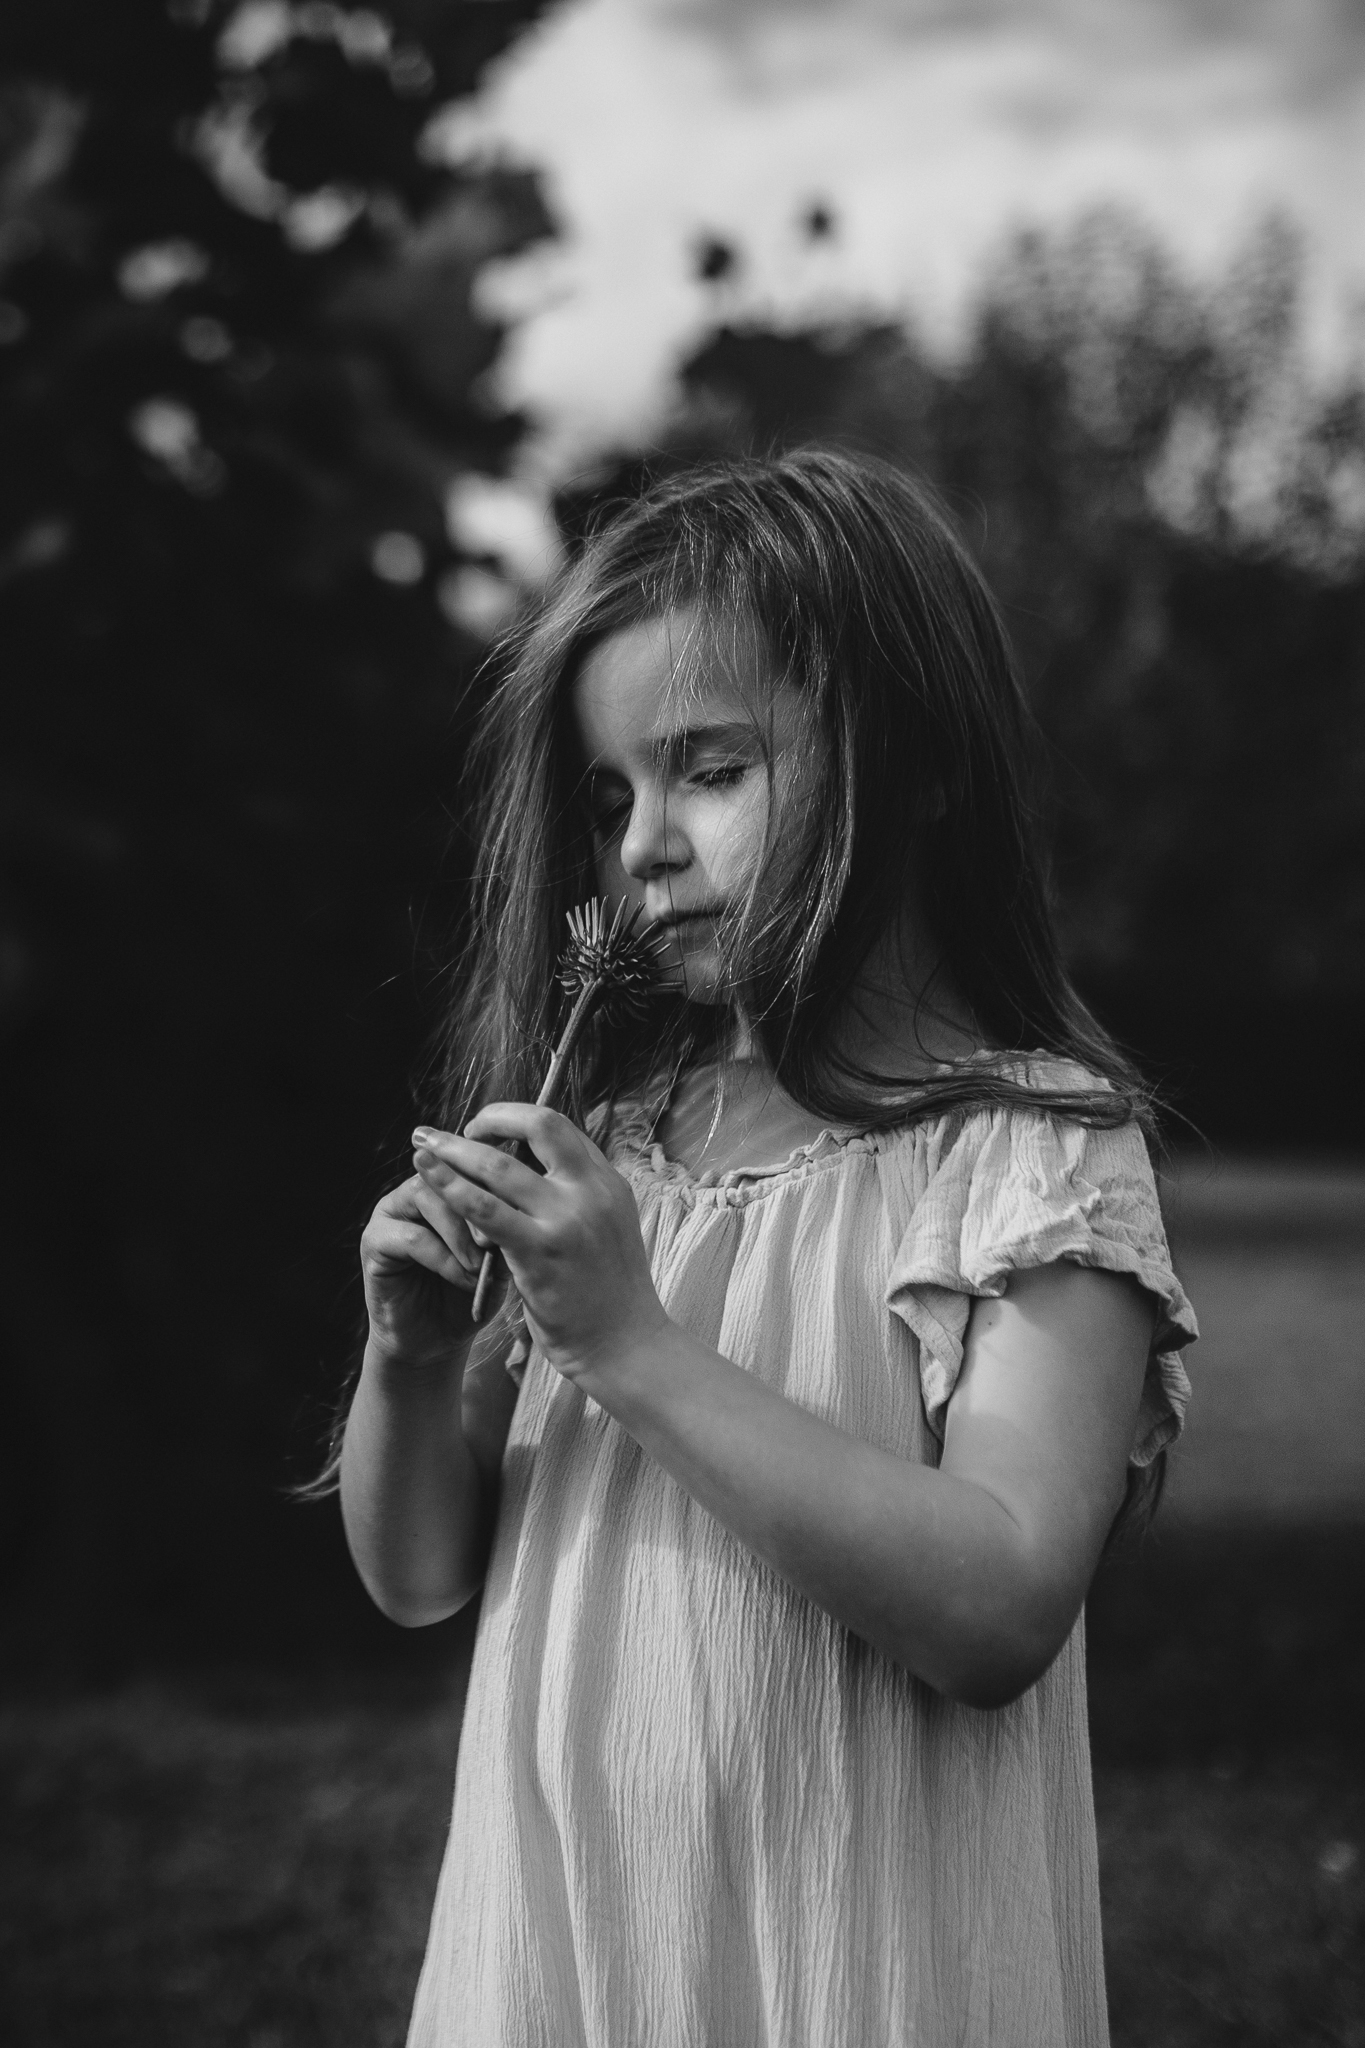 Black and white girl smelling a flower summer Ashburn Loudoun Northern Virginia family lifestyle documentary childhood Marti Austin Photography